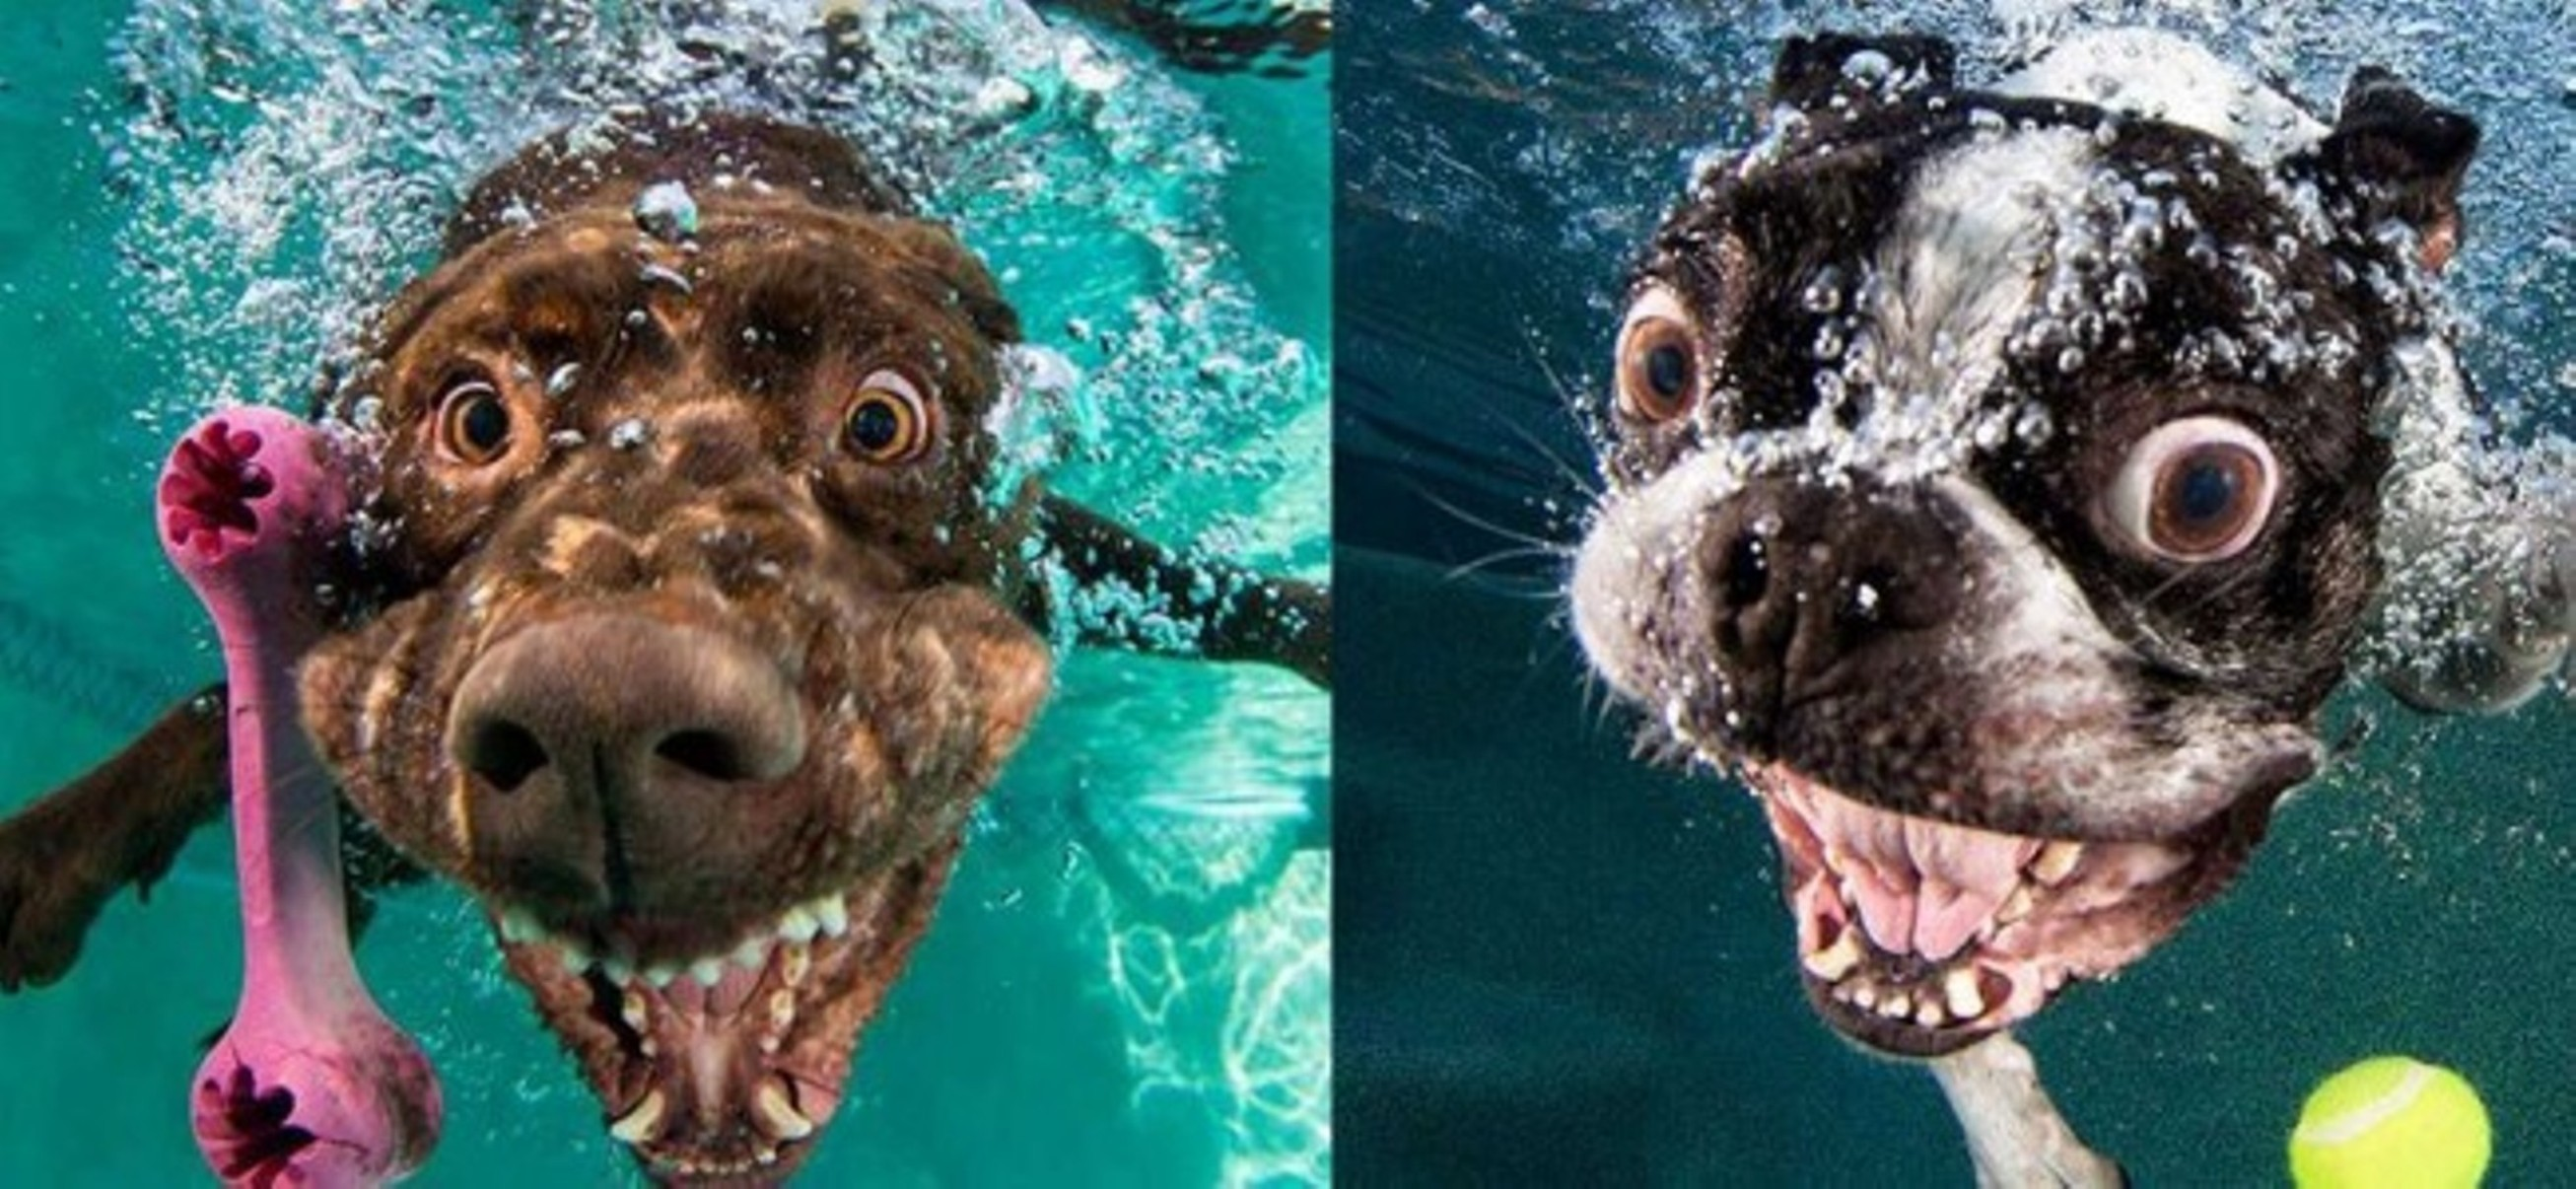 Dogs With People S Faces